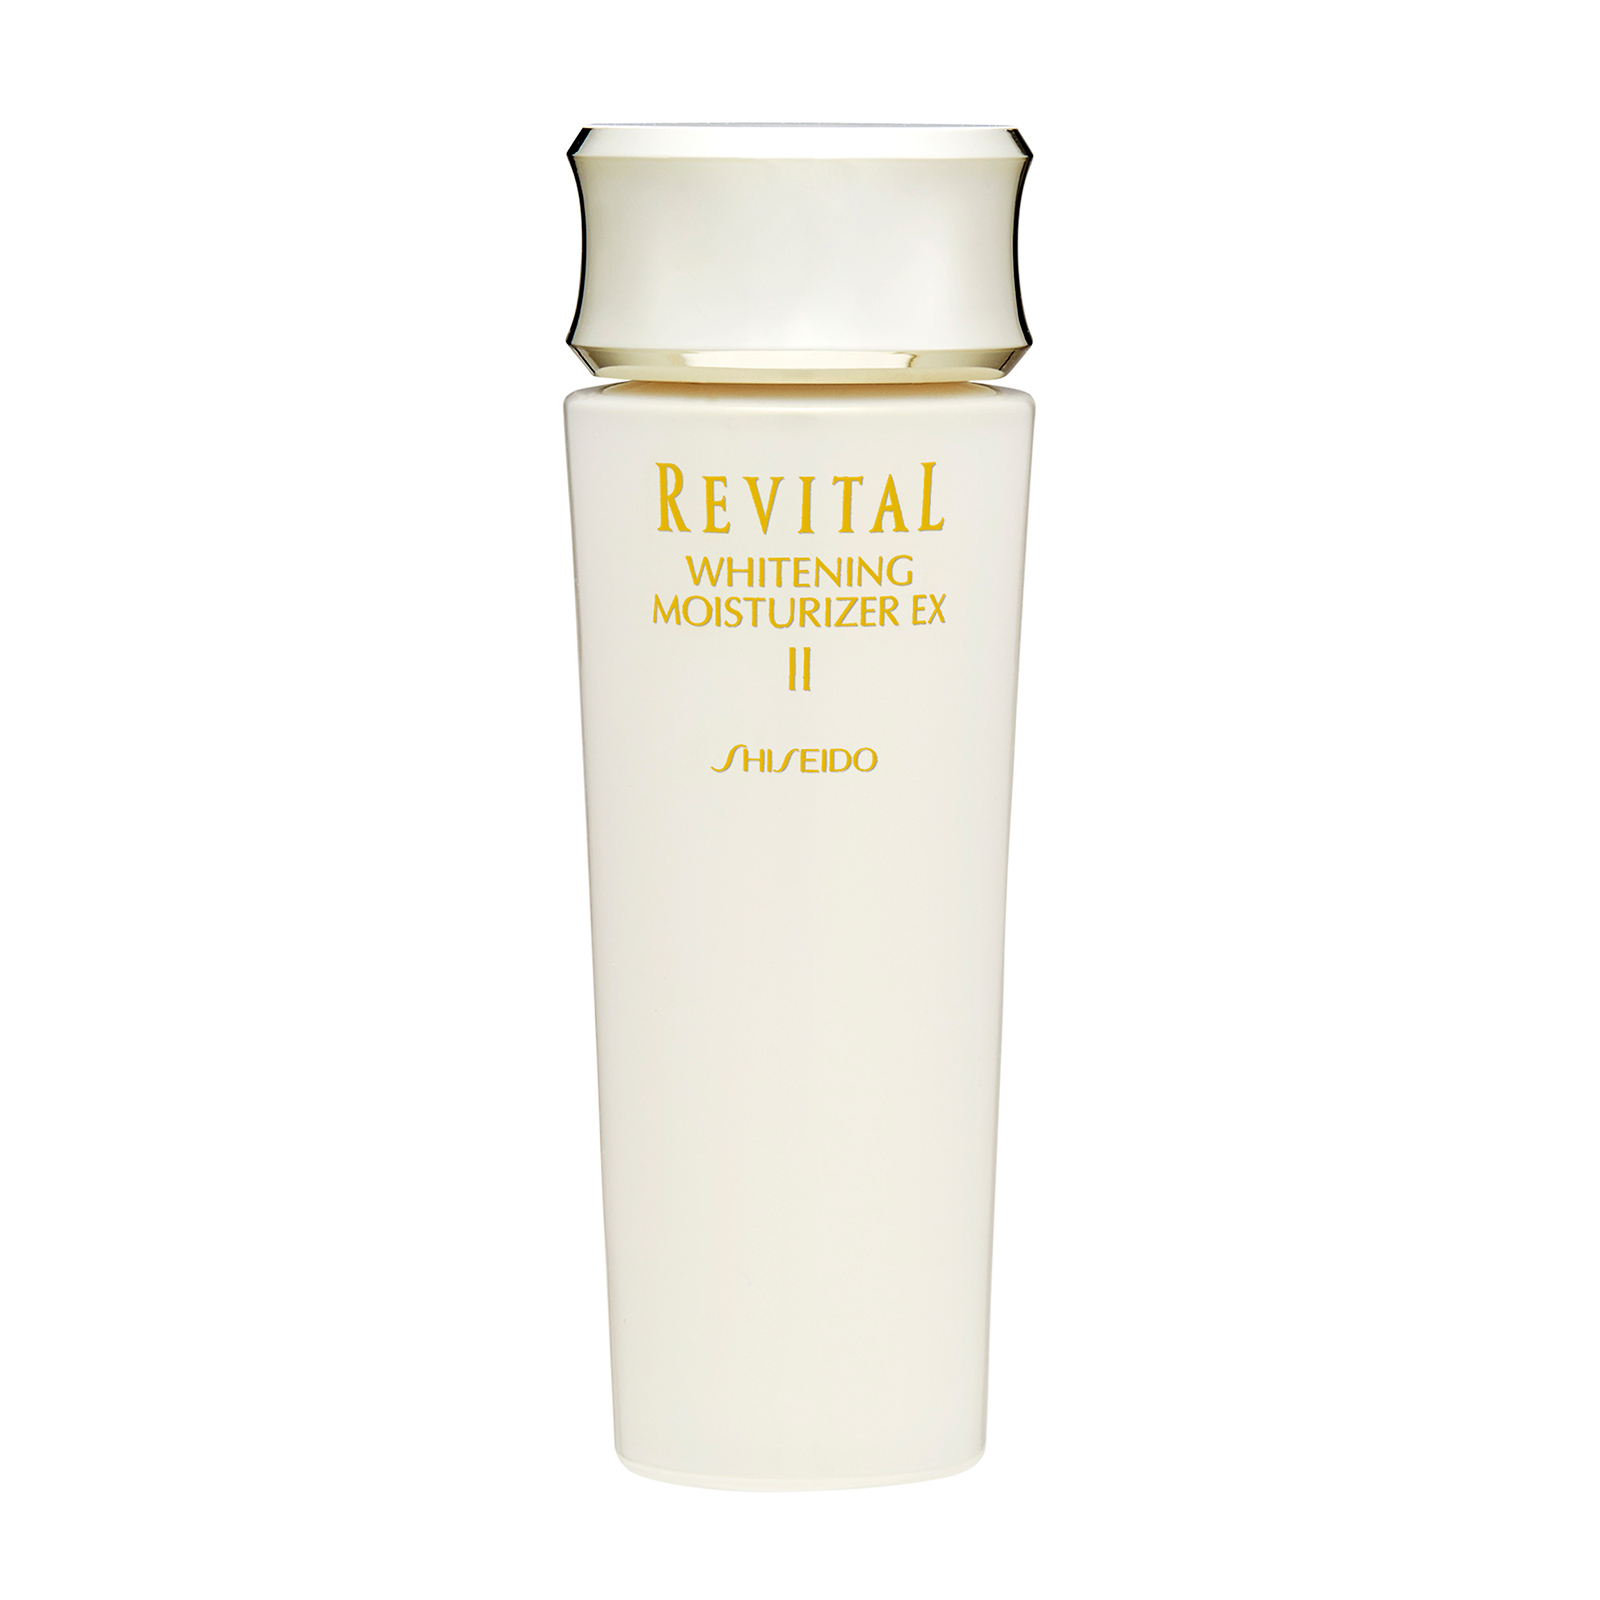 Shiseido Revital Whitening Moisturizer EX II - Rich, 3.3oz, 100ml